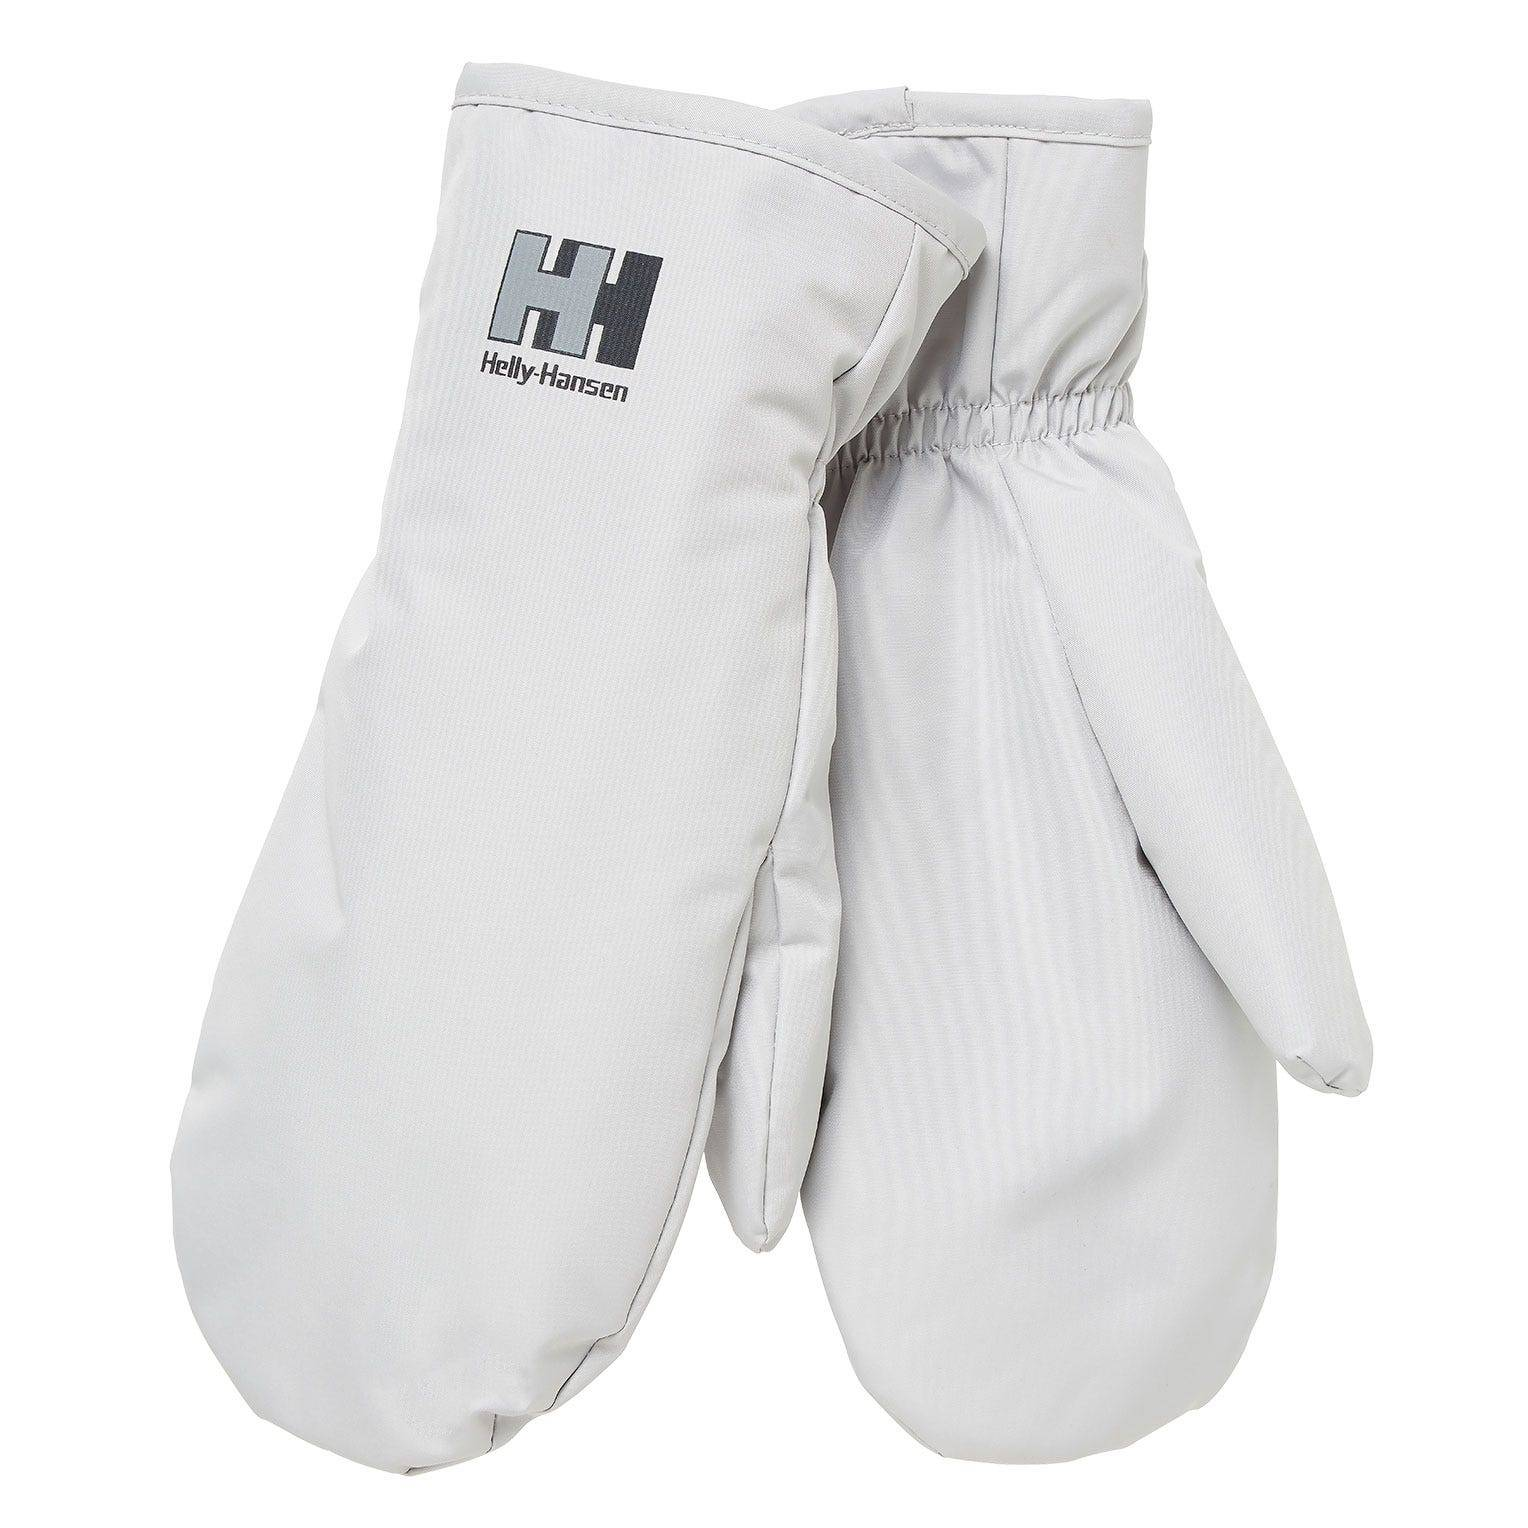 Helly Hansen Polar Mittens White XL